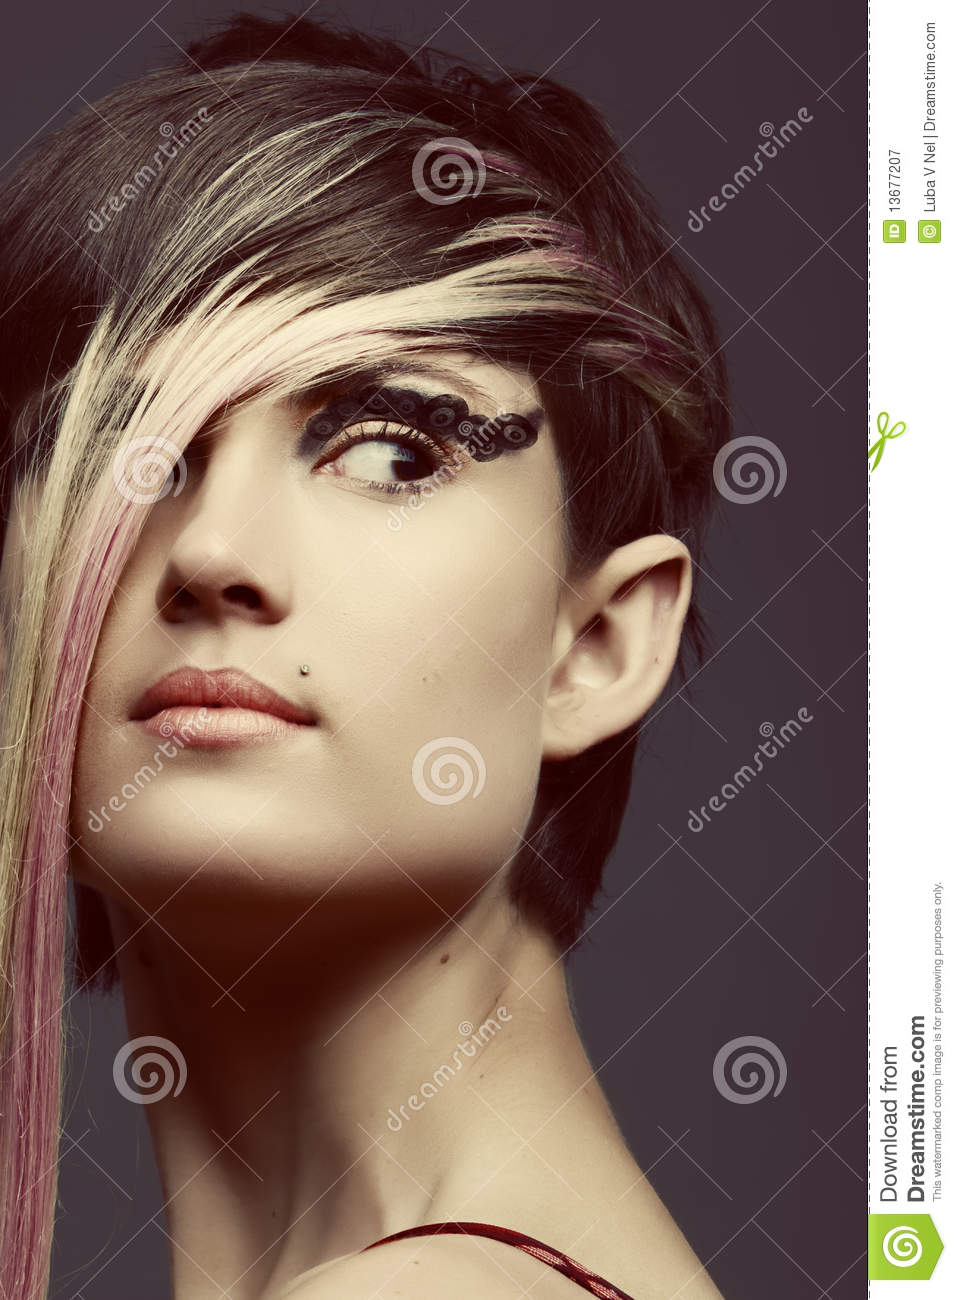 Emo Girl With Piercings And Fringe Royalty Free Stock